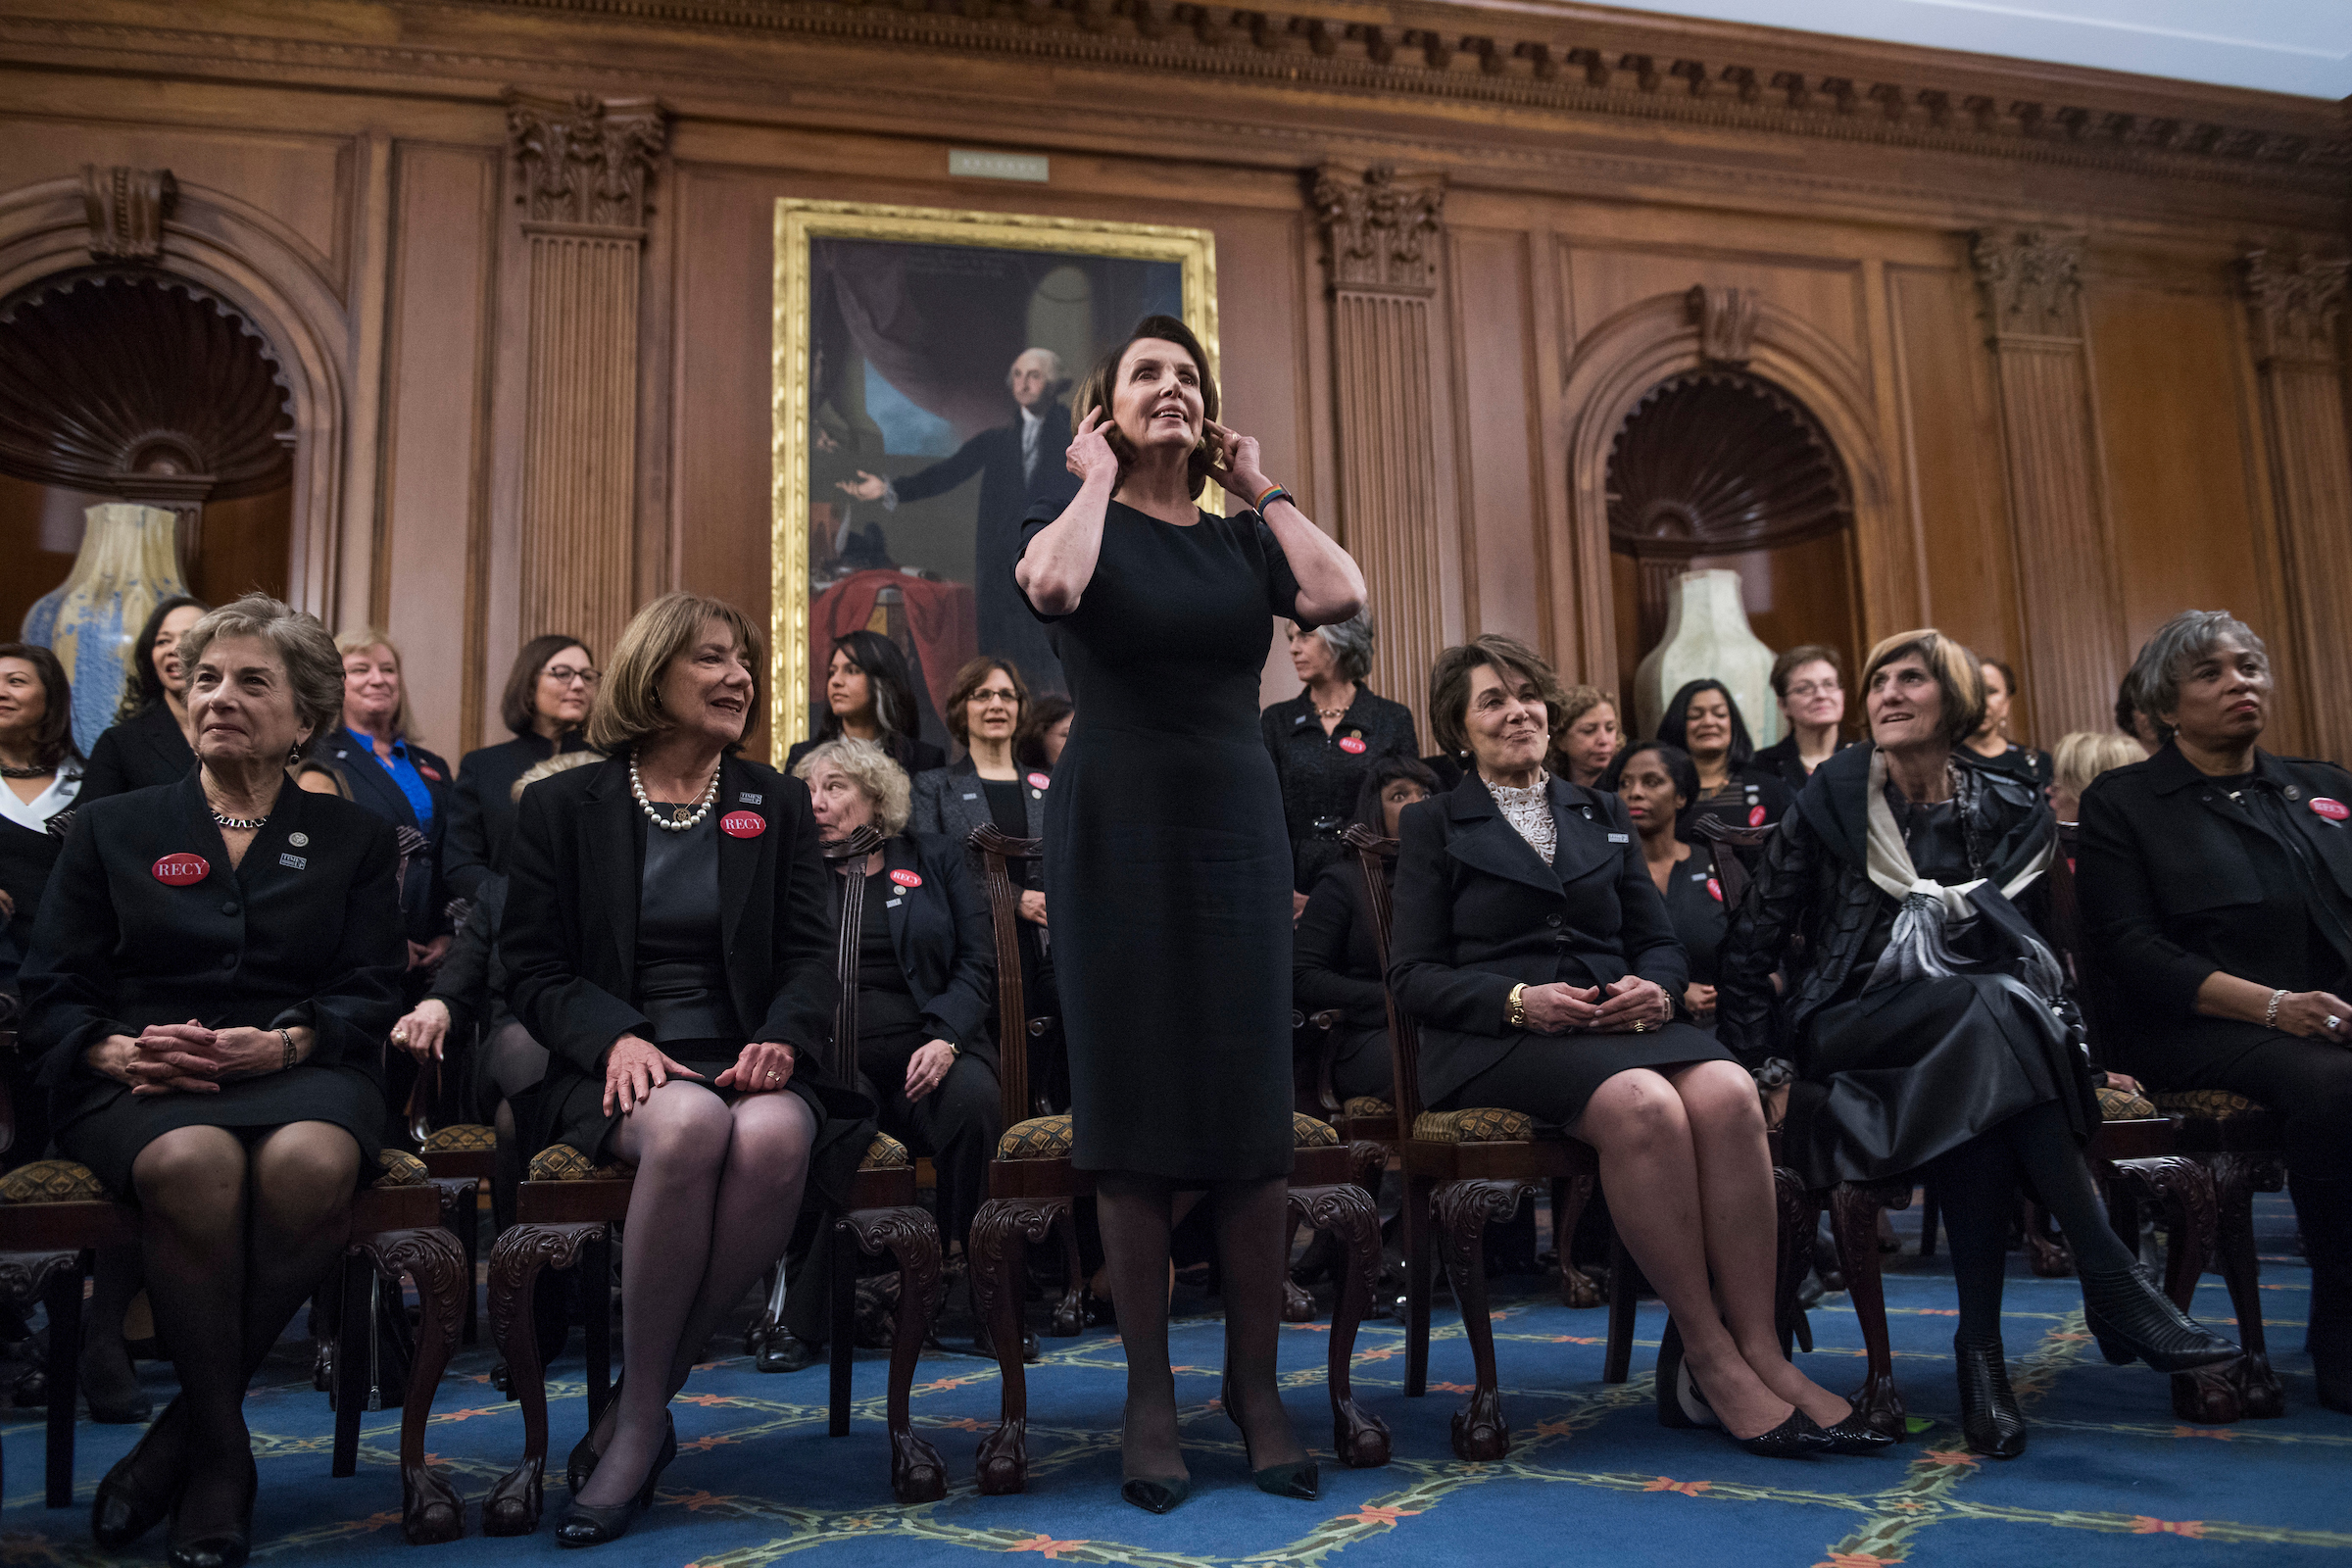 Front row from left, Reps. Jan Schakowsky, D-Ill., Susan Davis, D-Calif., House Minority Leader Nancy Pelosi, D-Calif., Anna Eshoo, D-Calif., Rosa DeLauro, D-Conn., and Brenda Lawrence, D-Mich., wear all black during a photo op in the Capitol's Rayburn Room to show solidarity with men and women who are speaking out against sexual harassment and discrimination on January 30, 2018. (Photo By Tom Williams/CQ Roll Call)